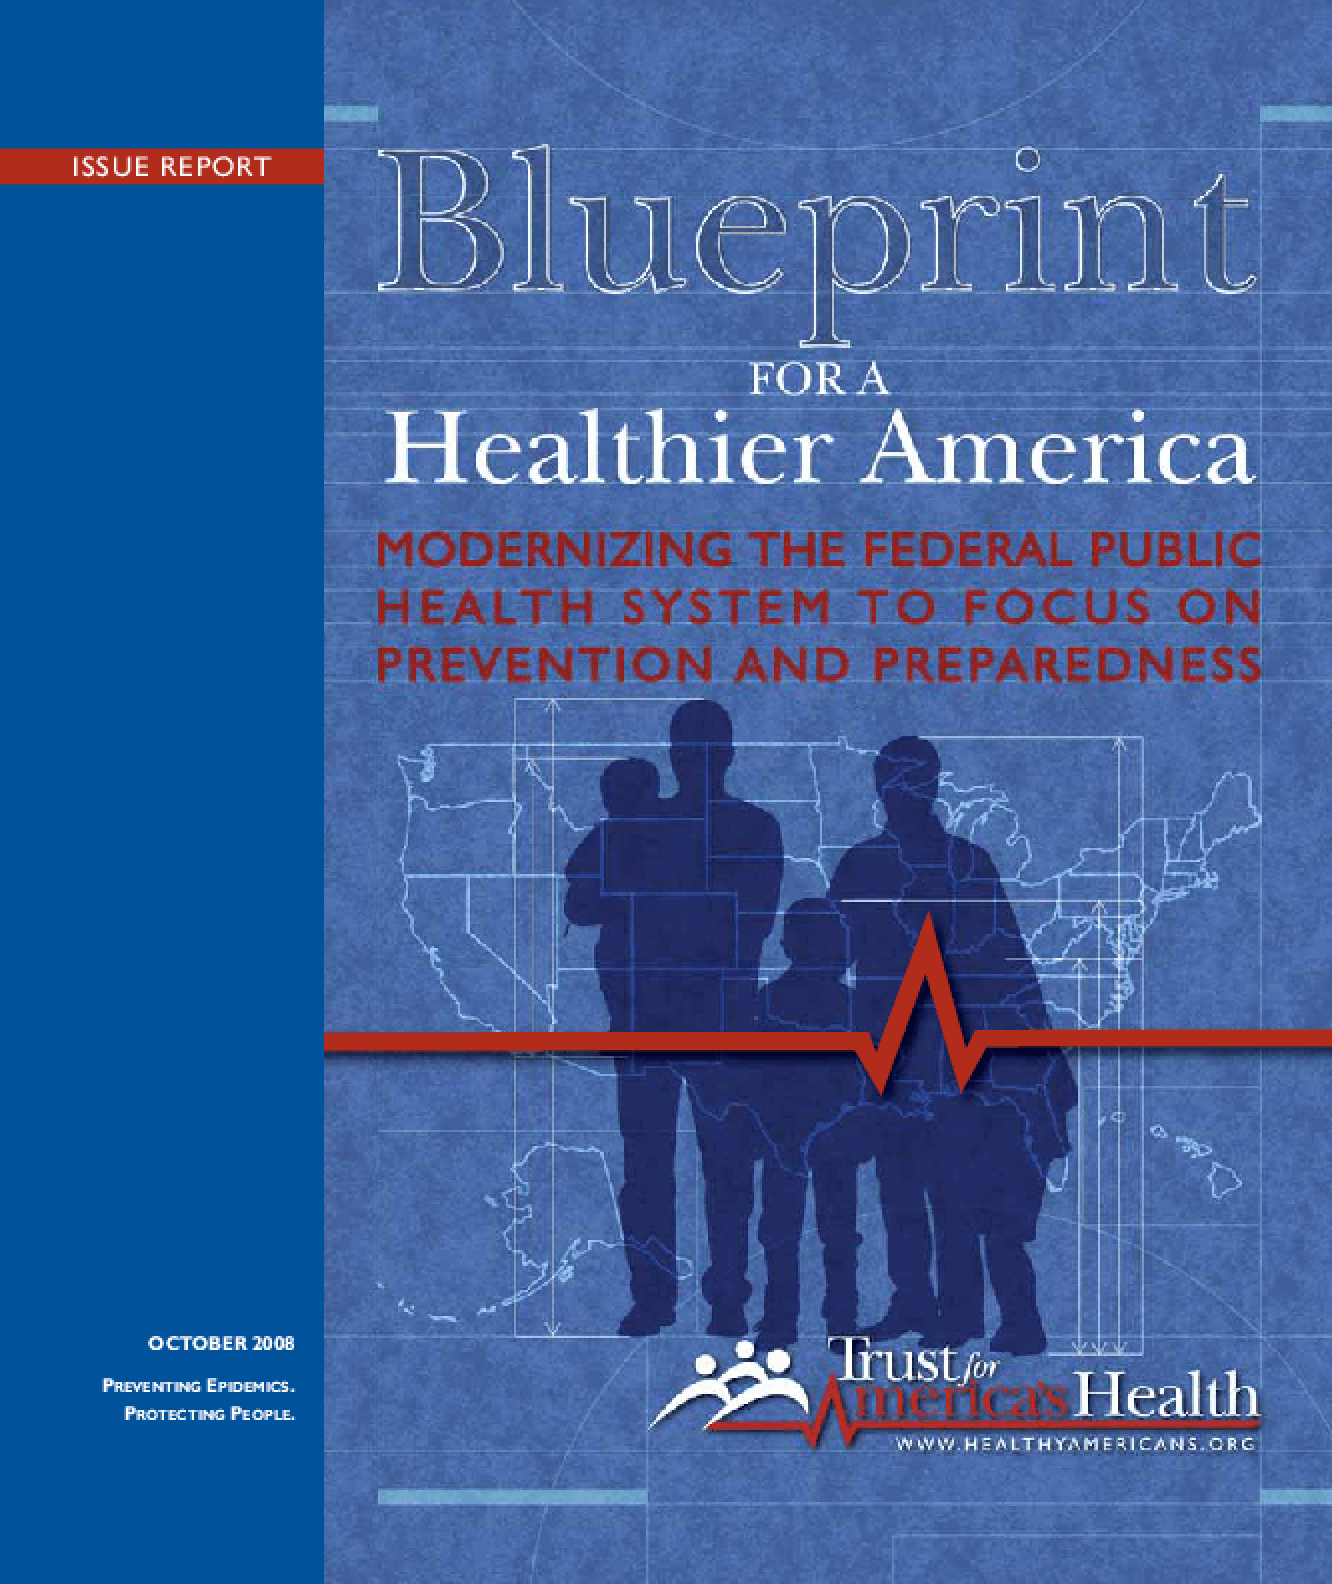 Blueprint for a Healthier America: Modernizing the Federal Public Health System to Focus on Prevention and Preparedness